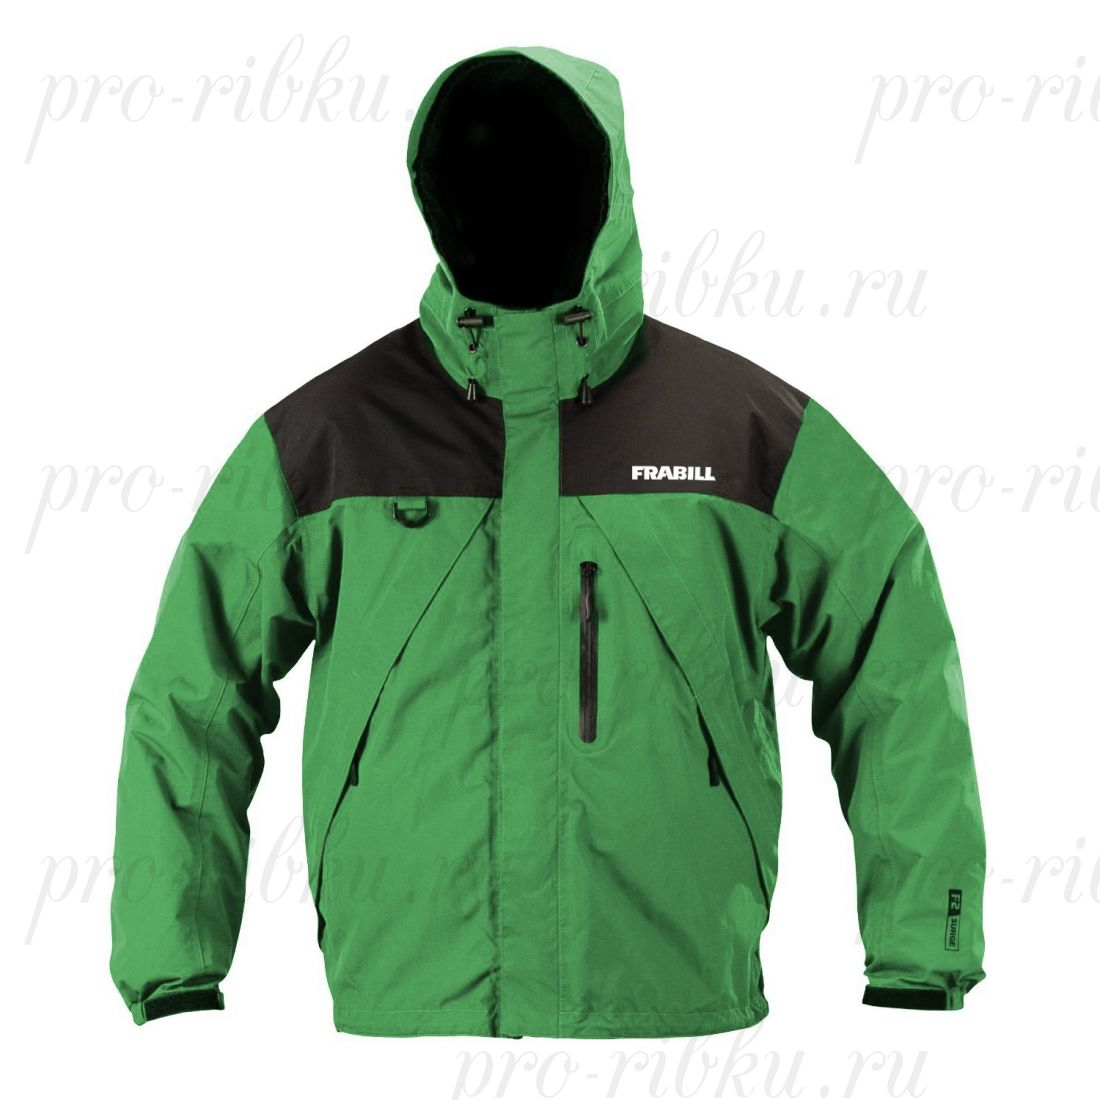 Куртка штормовая Frabill F2 Surge RainSuit Jacket Green размер XL